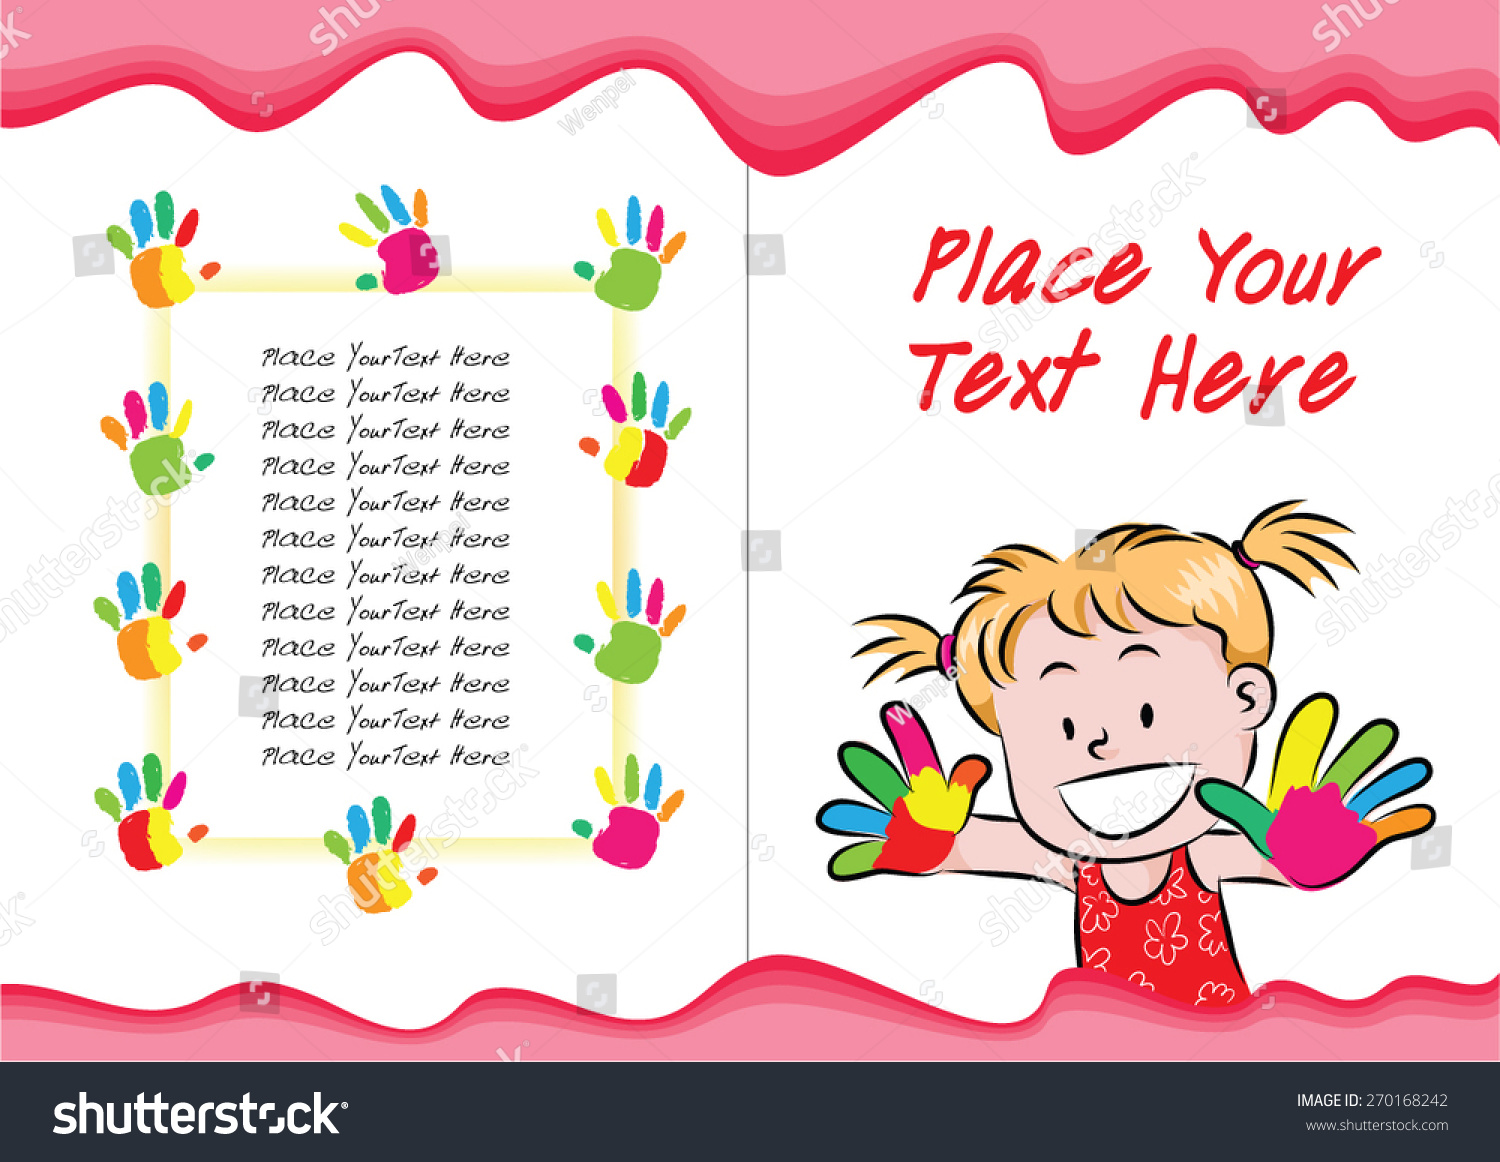 Kids Cookbook Cover Design : Kids book cover design stock vector shutterstock